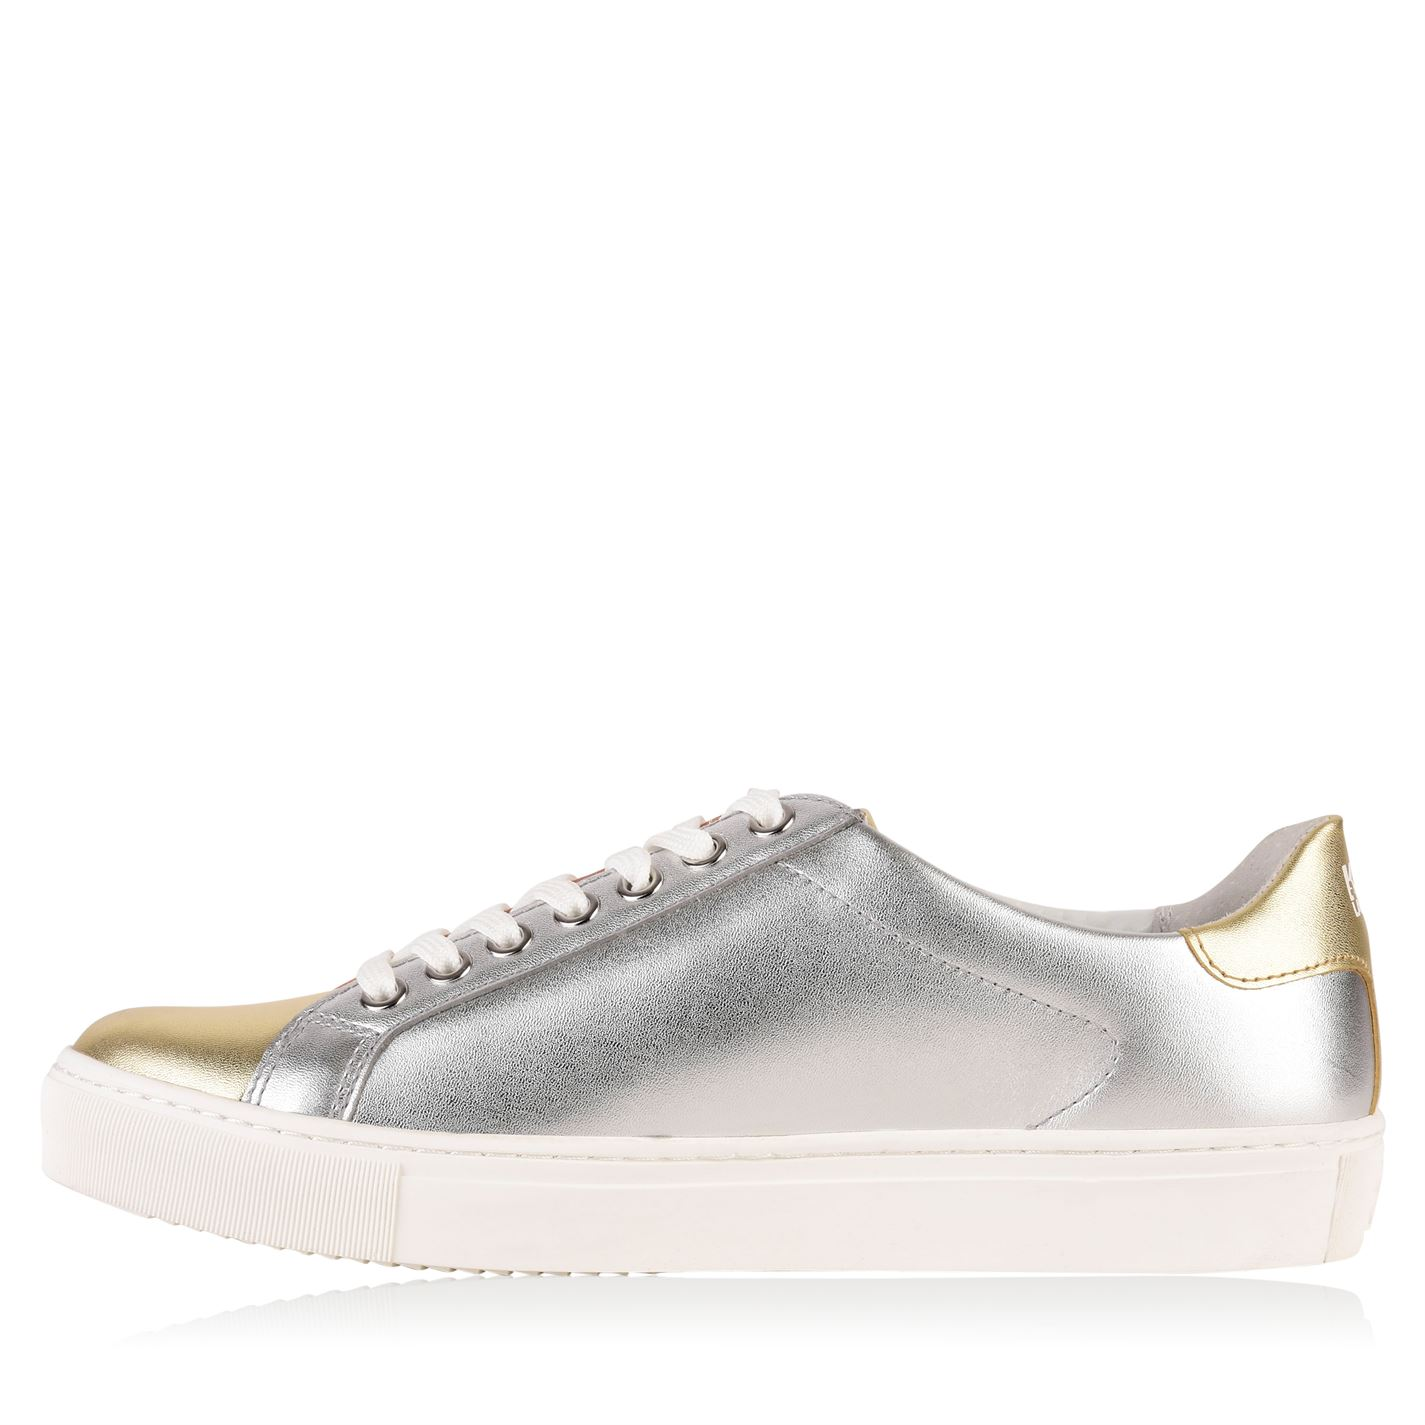 Womens KARL LAGERFELD Iconic Iconic Iconic Low Top Trainers Lace Up New fa356f